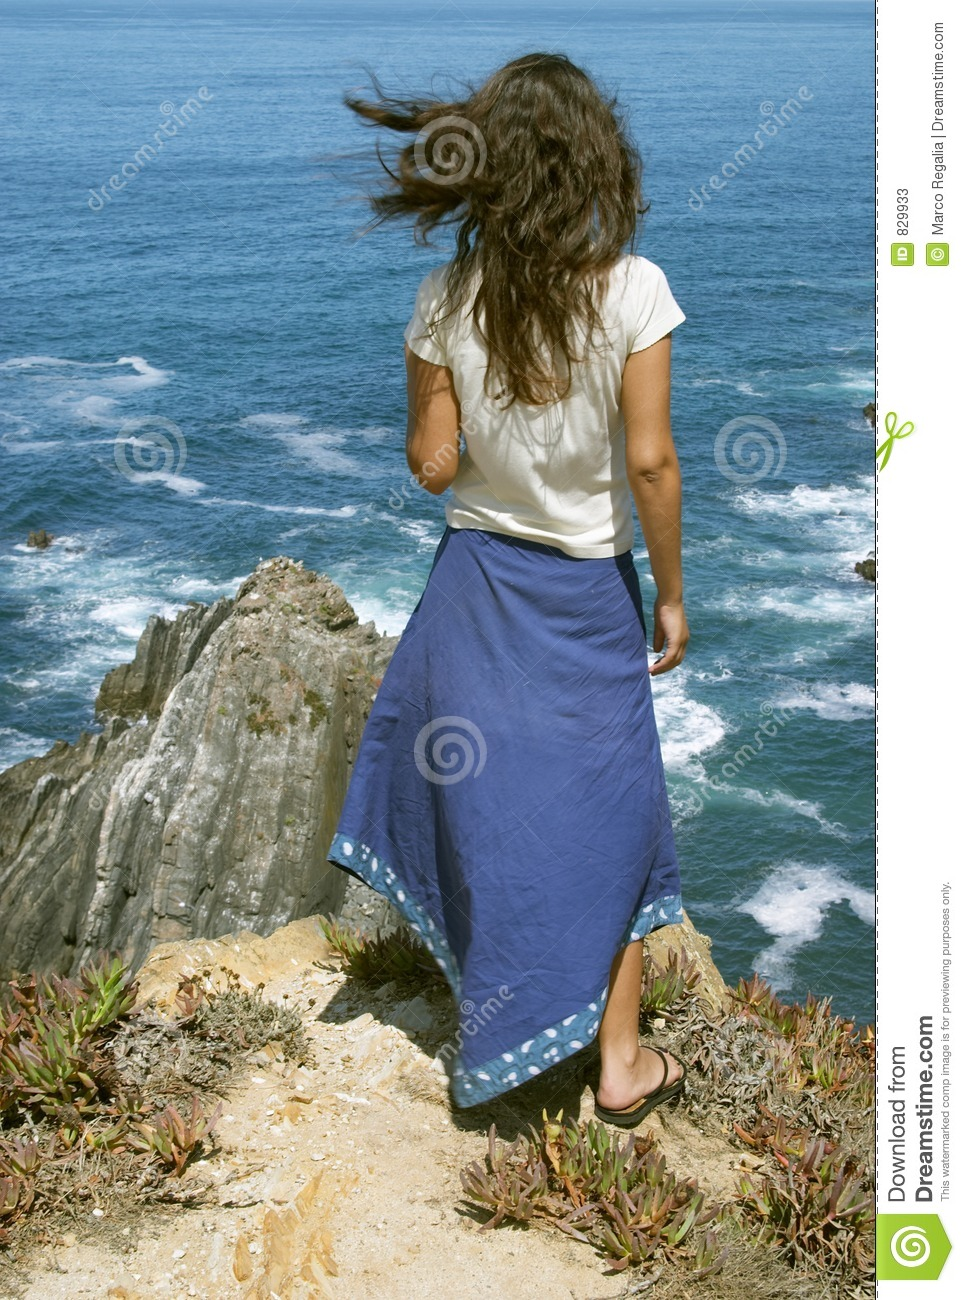 Young female in front of ocean